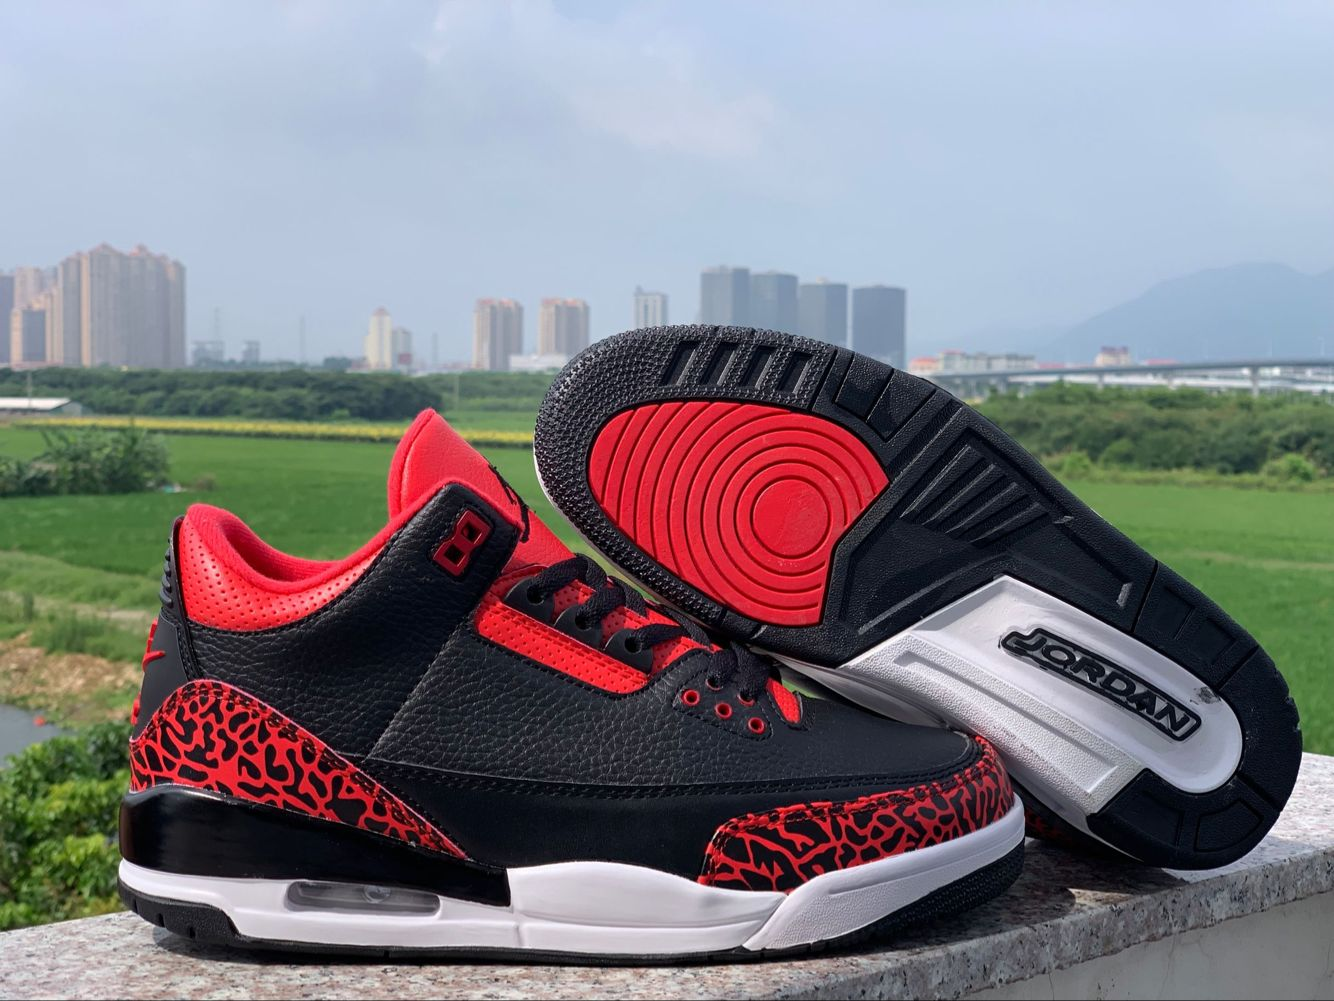 2019 Air Jordan 3 Bred Red Black Shoes